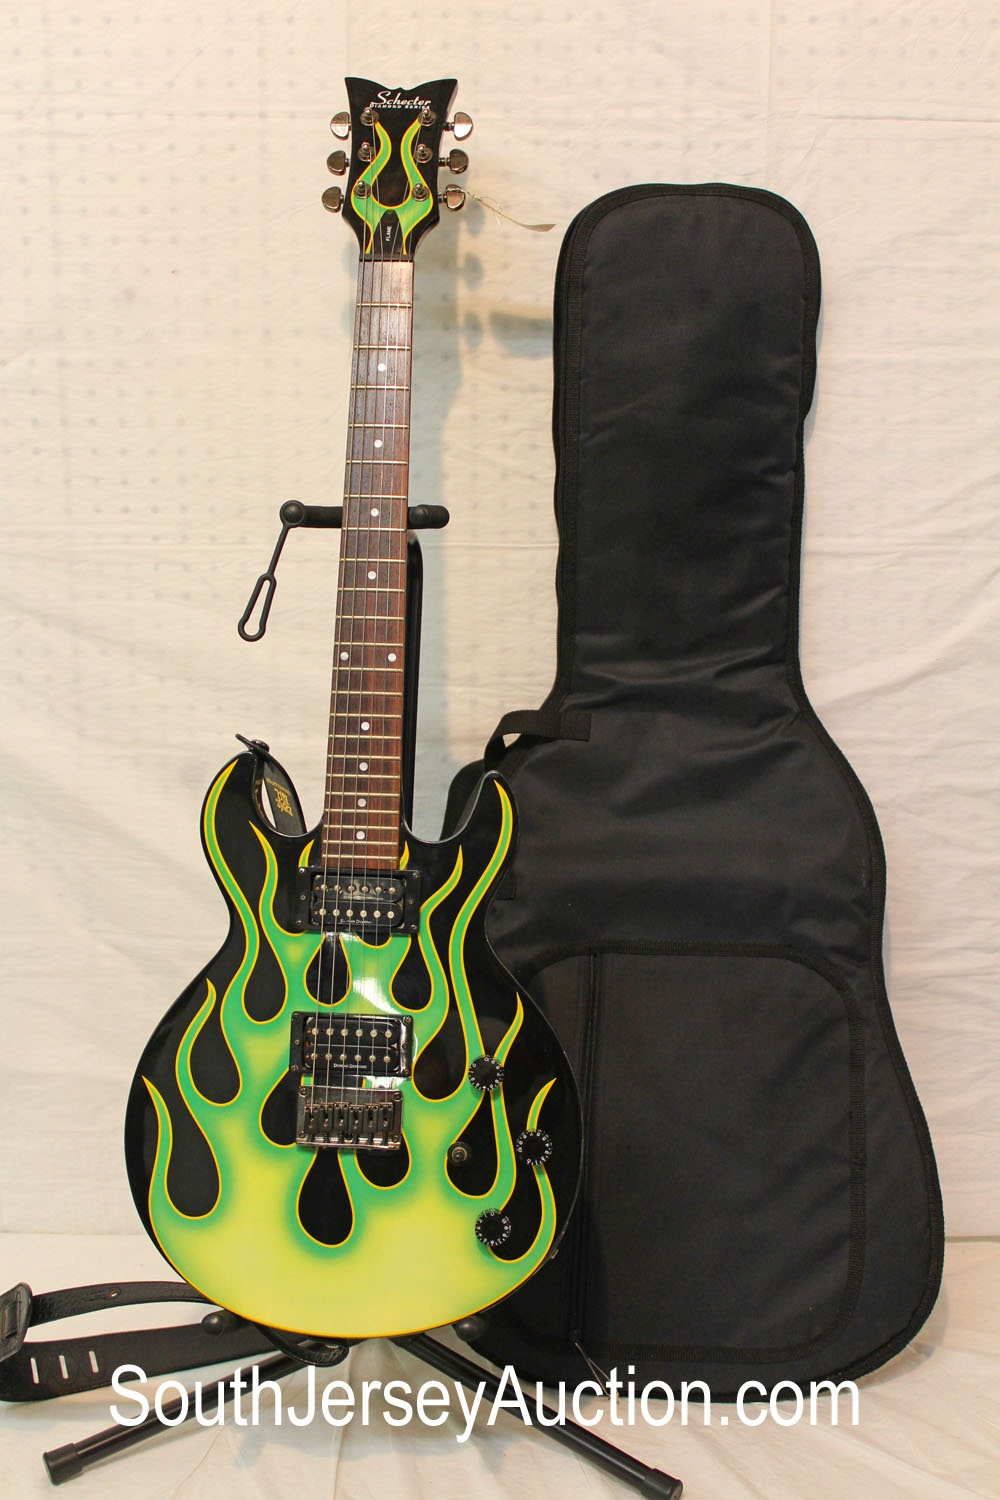 Schecter Diamond Series Flame with green flames, year unknown, made in Korea, s/n 0211427, good shape, with soft gig bag, with strap